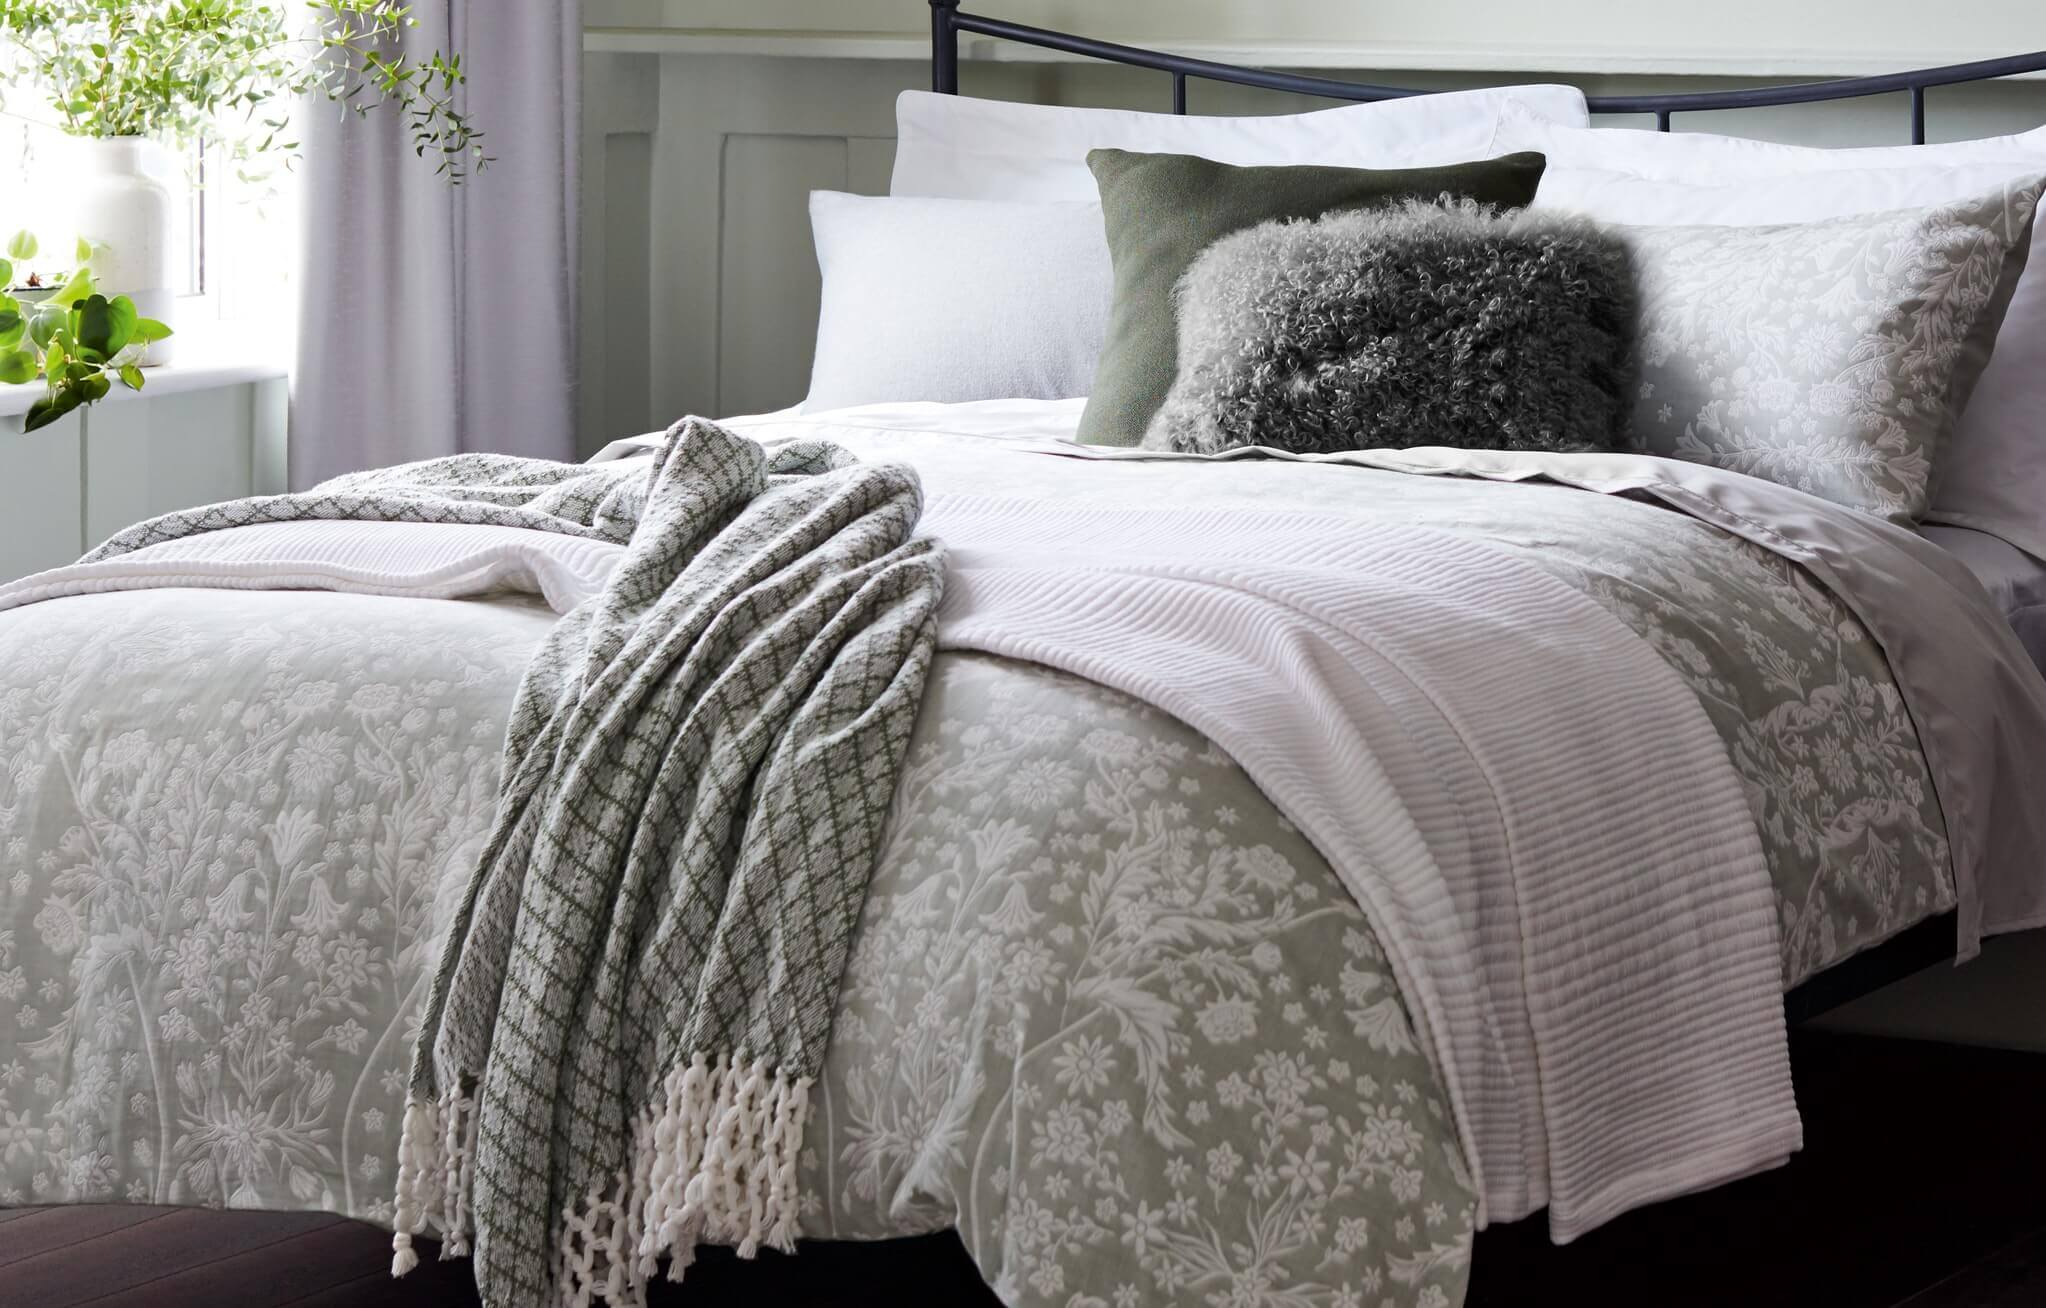 Winter-ready bedding sets